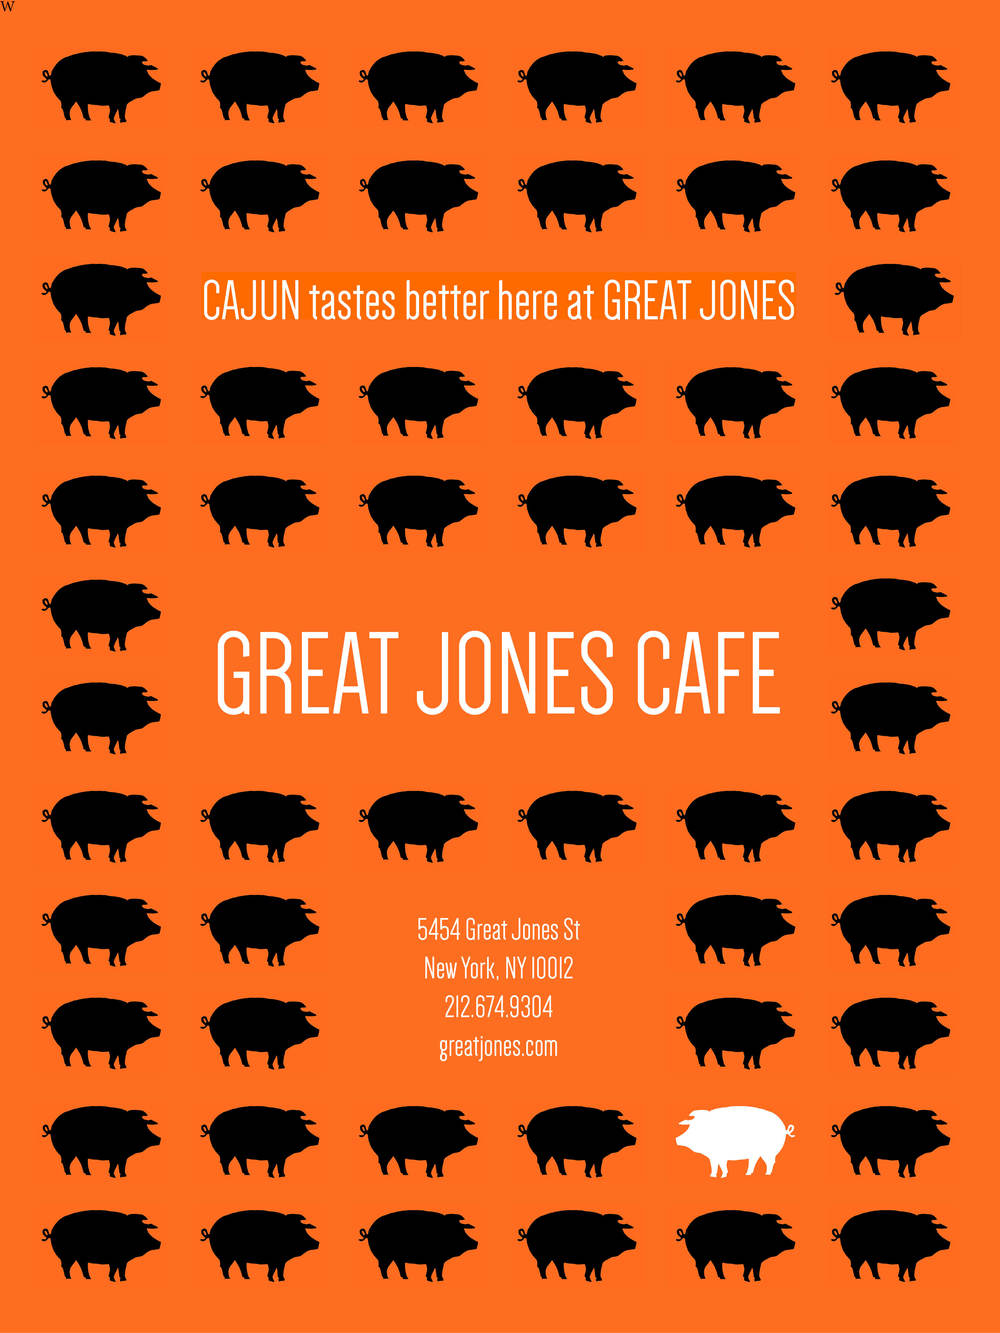 Great Jones Pig Ad2 Edit.jpg